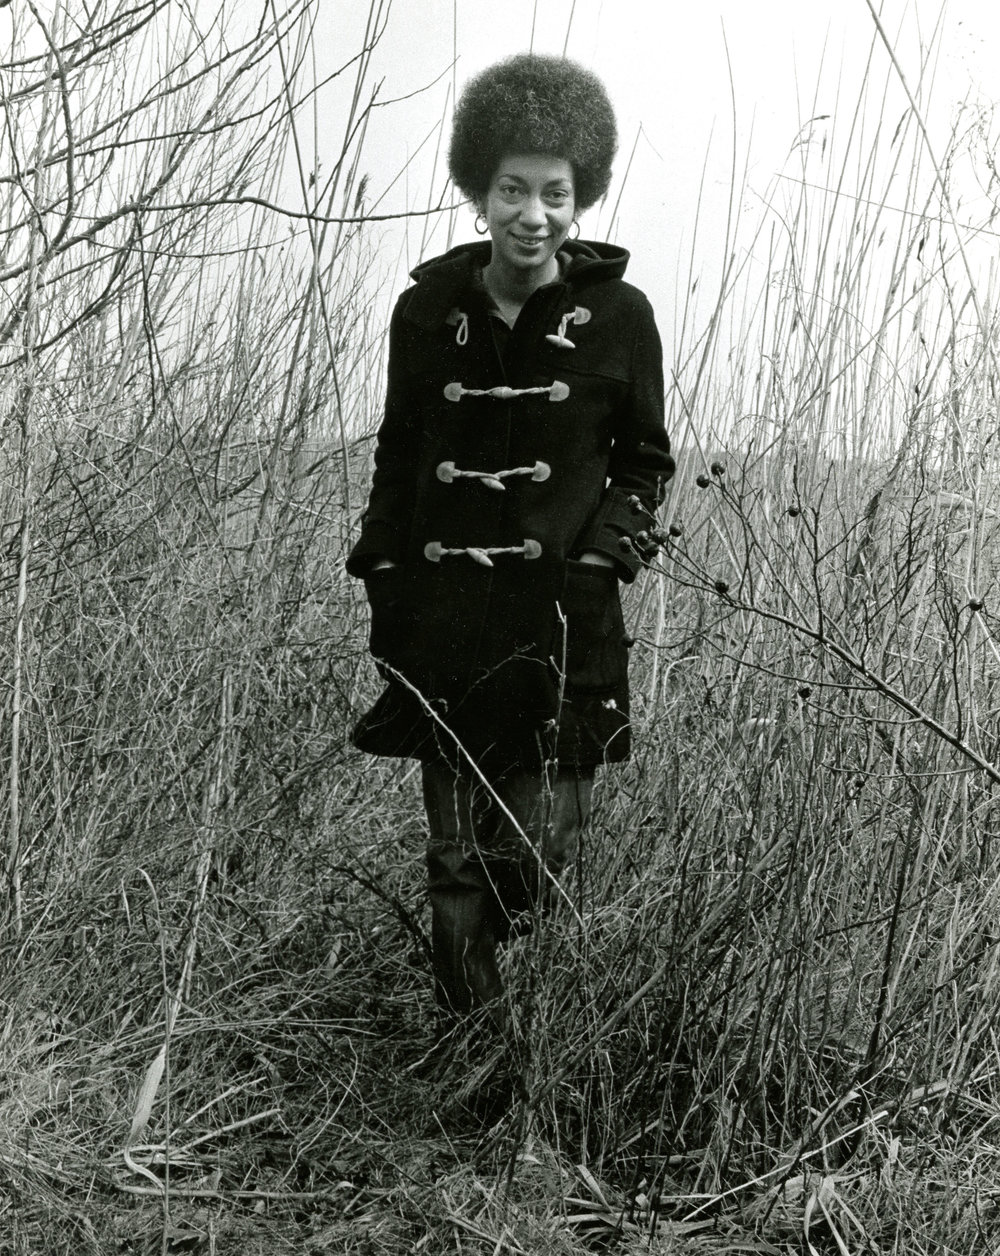 ca.1968. Photo possibly by Louise Bernikow. June Jordan Papers, Schlesinger Library,  Radcliffe Institute